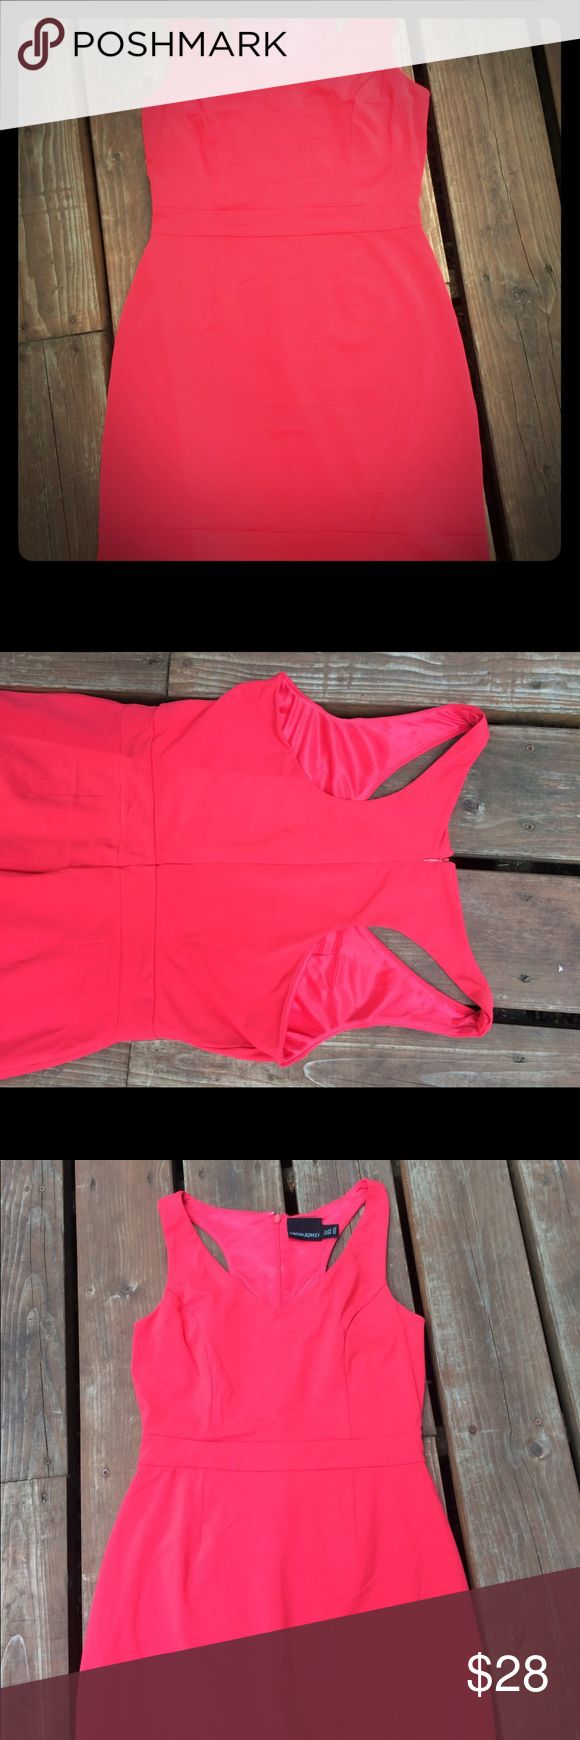 Cynthia Rowley midi length dress Midi length body hugging dress with stretch. Slight t back. Lined. Color in first photo accurate (bright coral). Worn once. Cynthia Rowley Dresses Midi